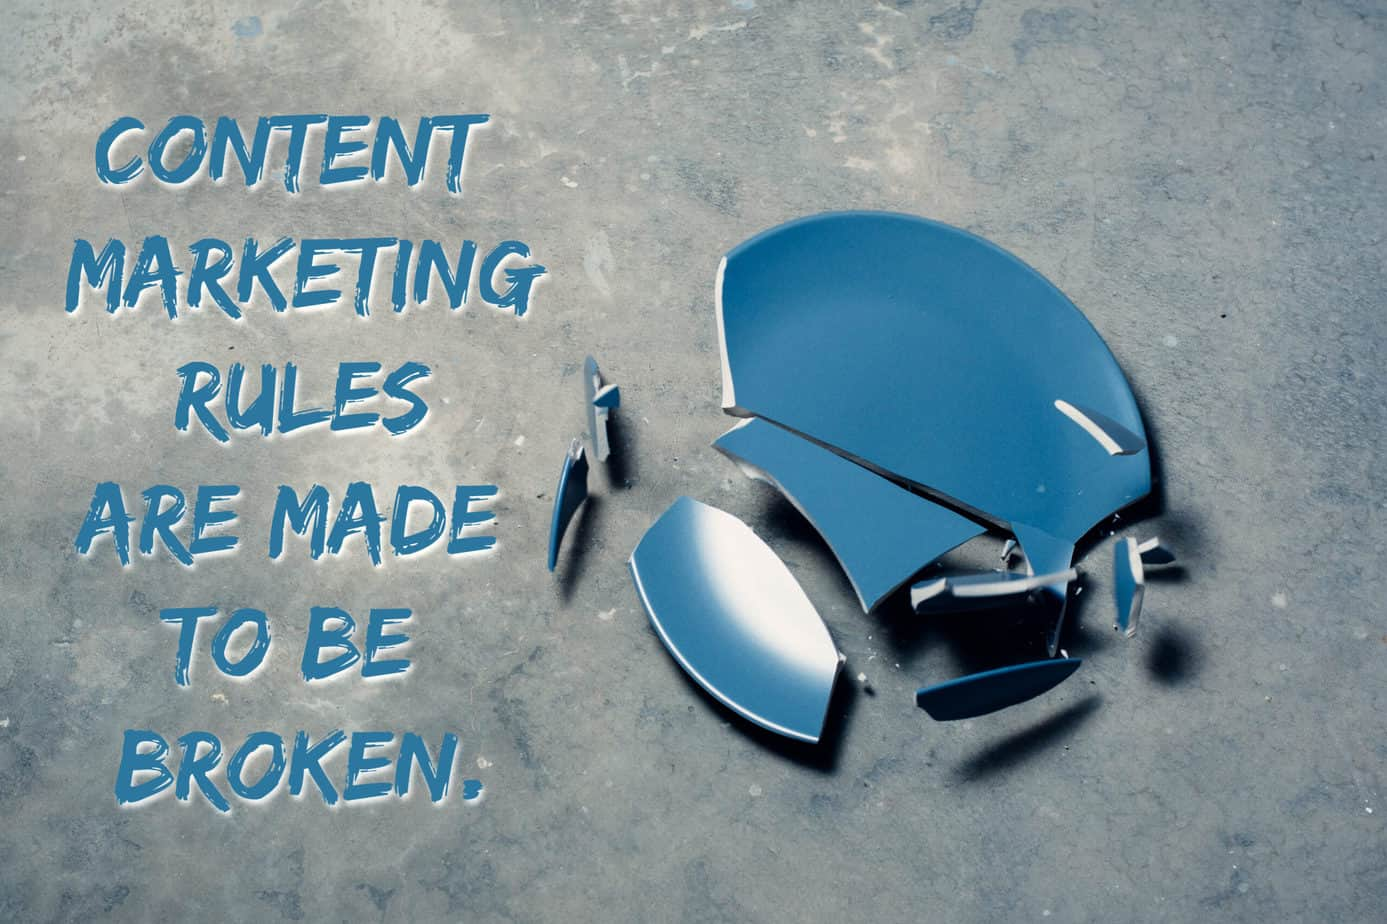 content marketing rules are made to be broken